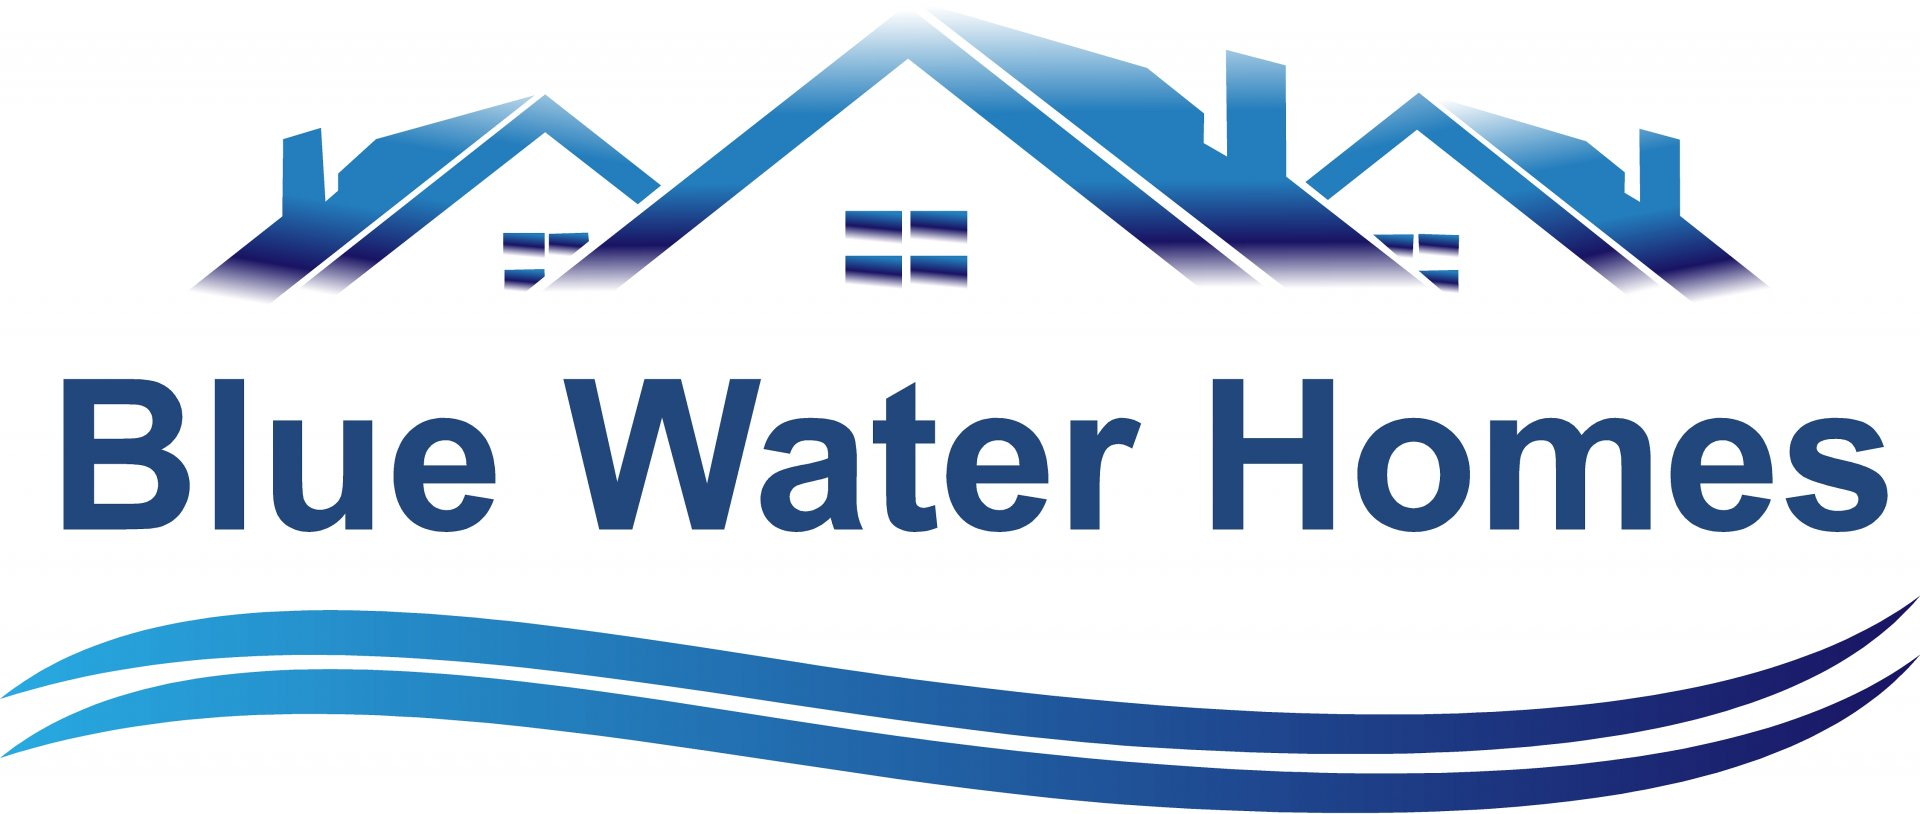 Blue Water Homes logo